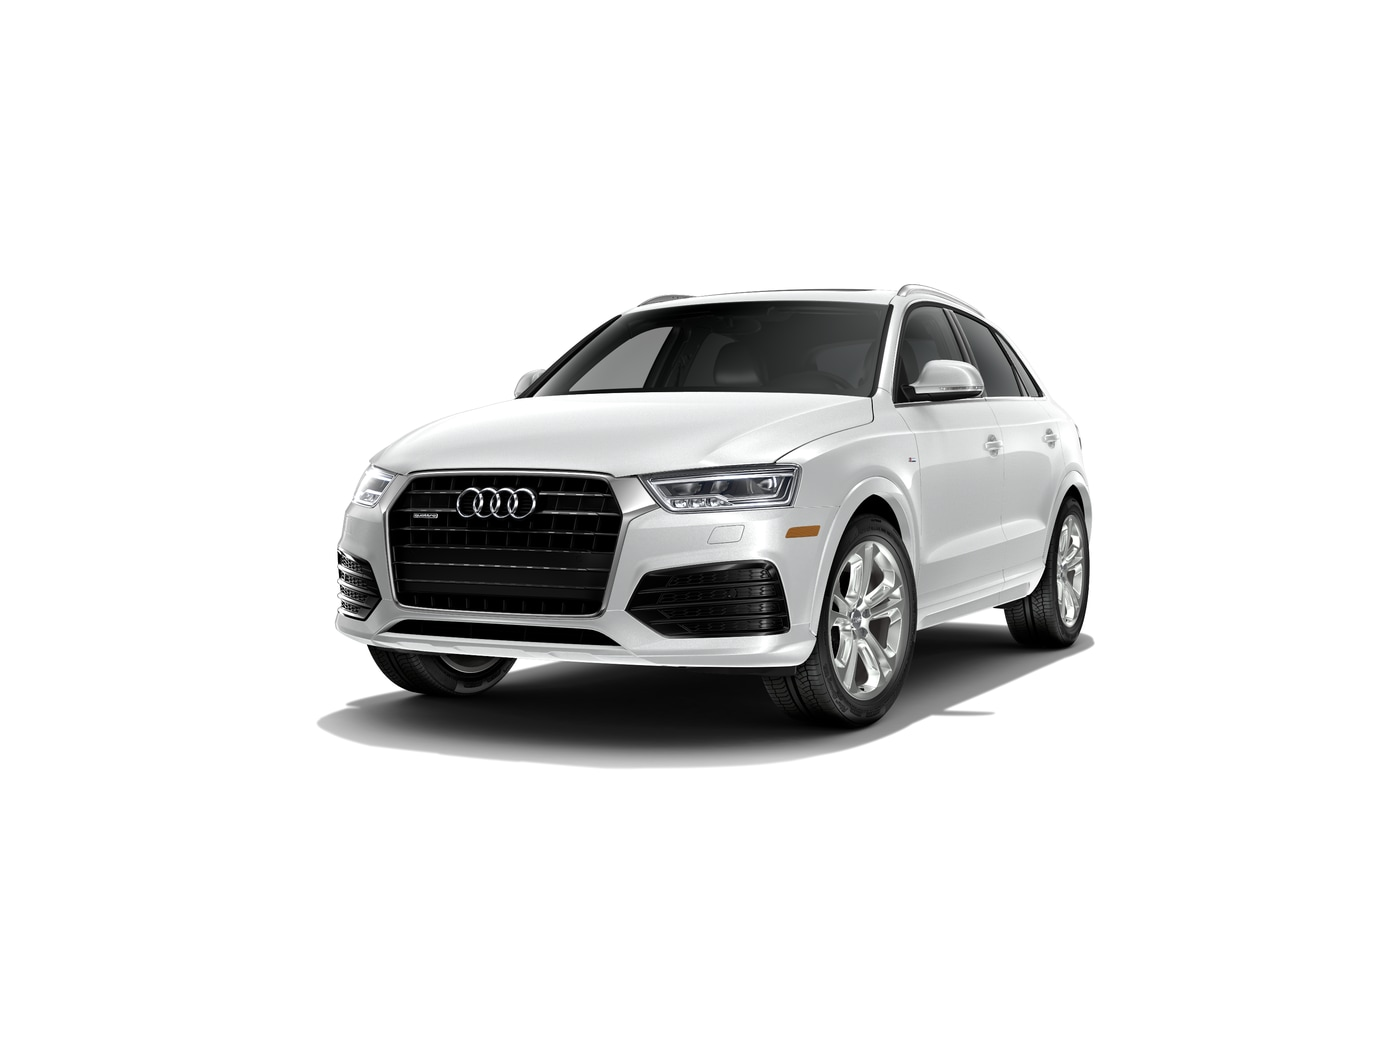 2018 Audi Q3 2.0T Premium Plus Sport Utility Vehicle